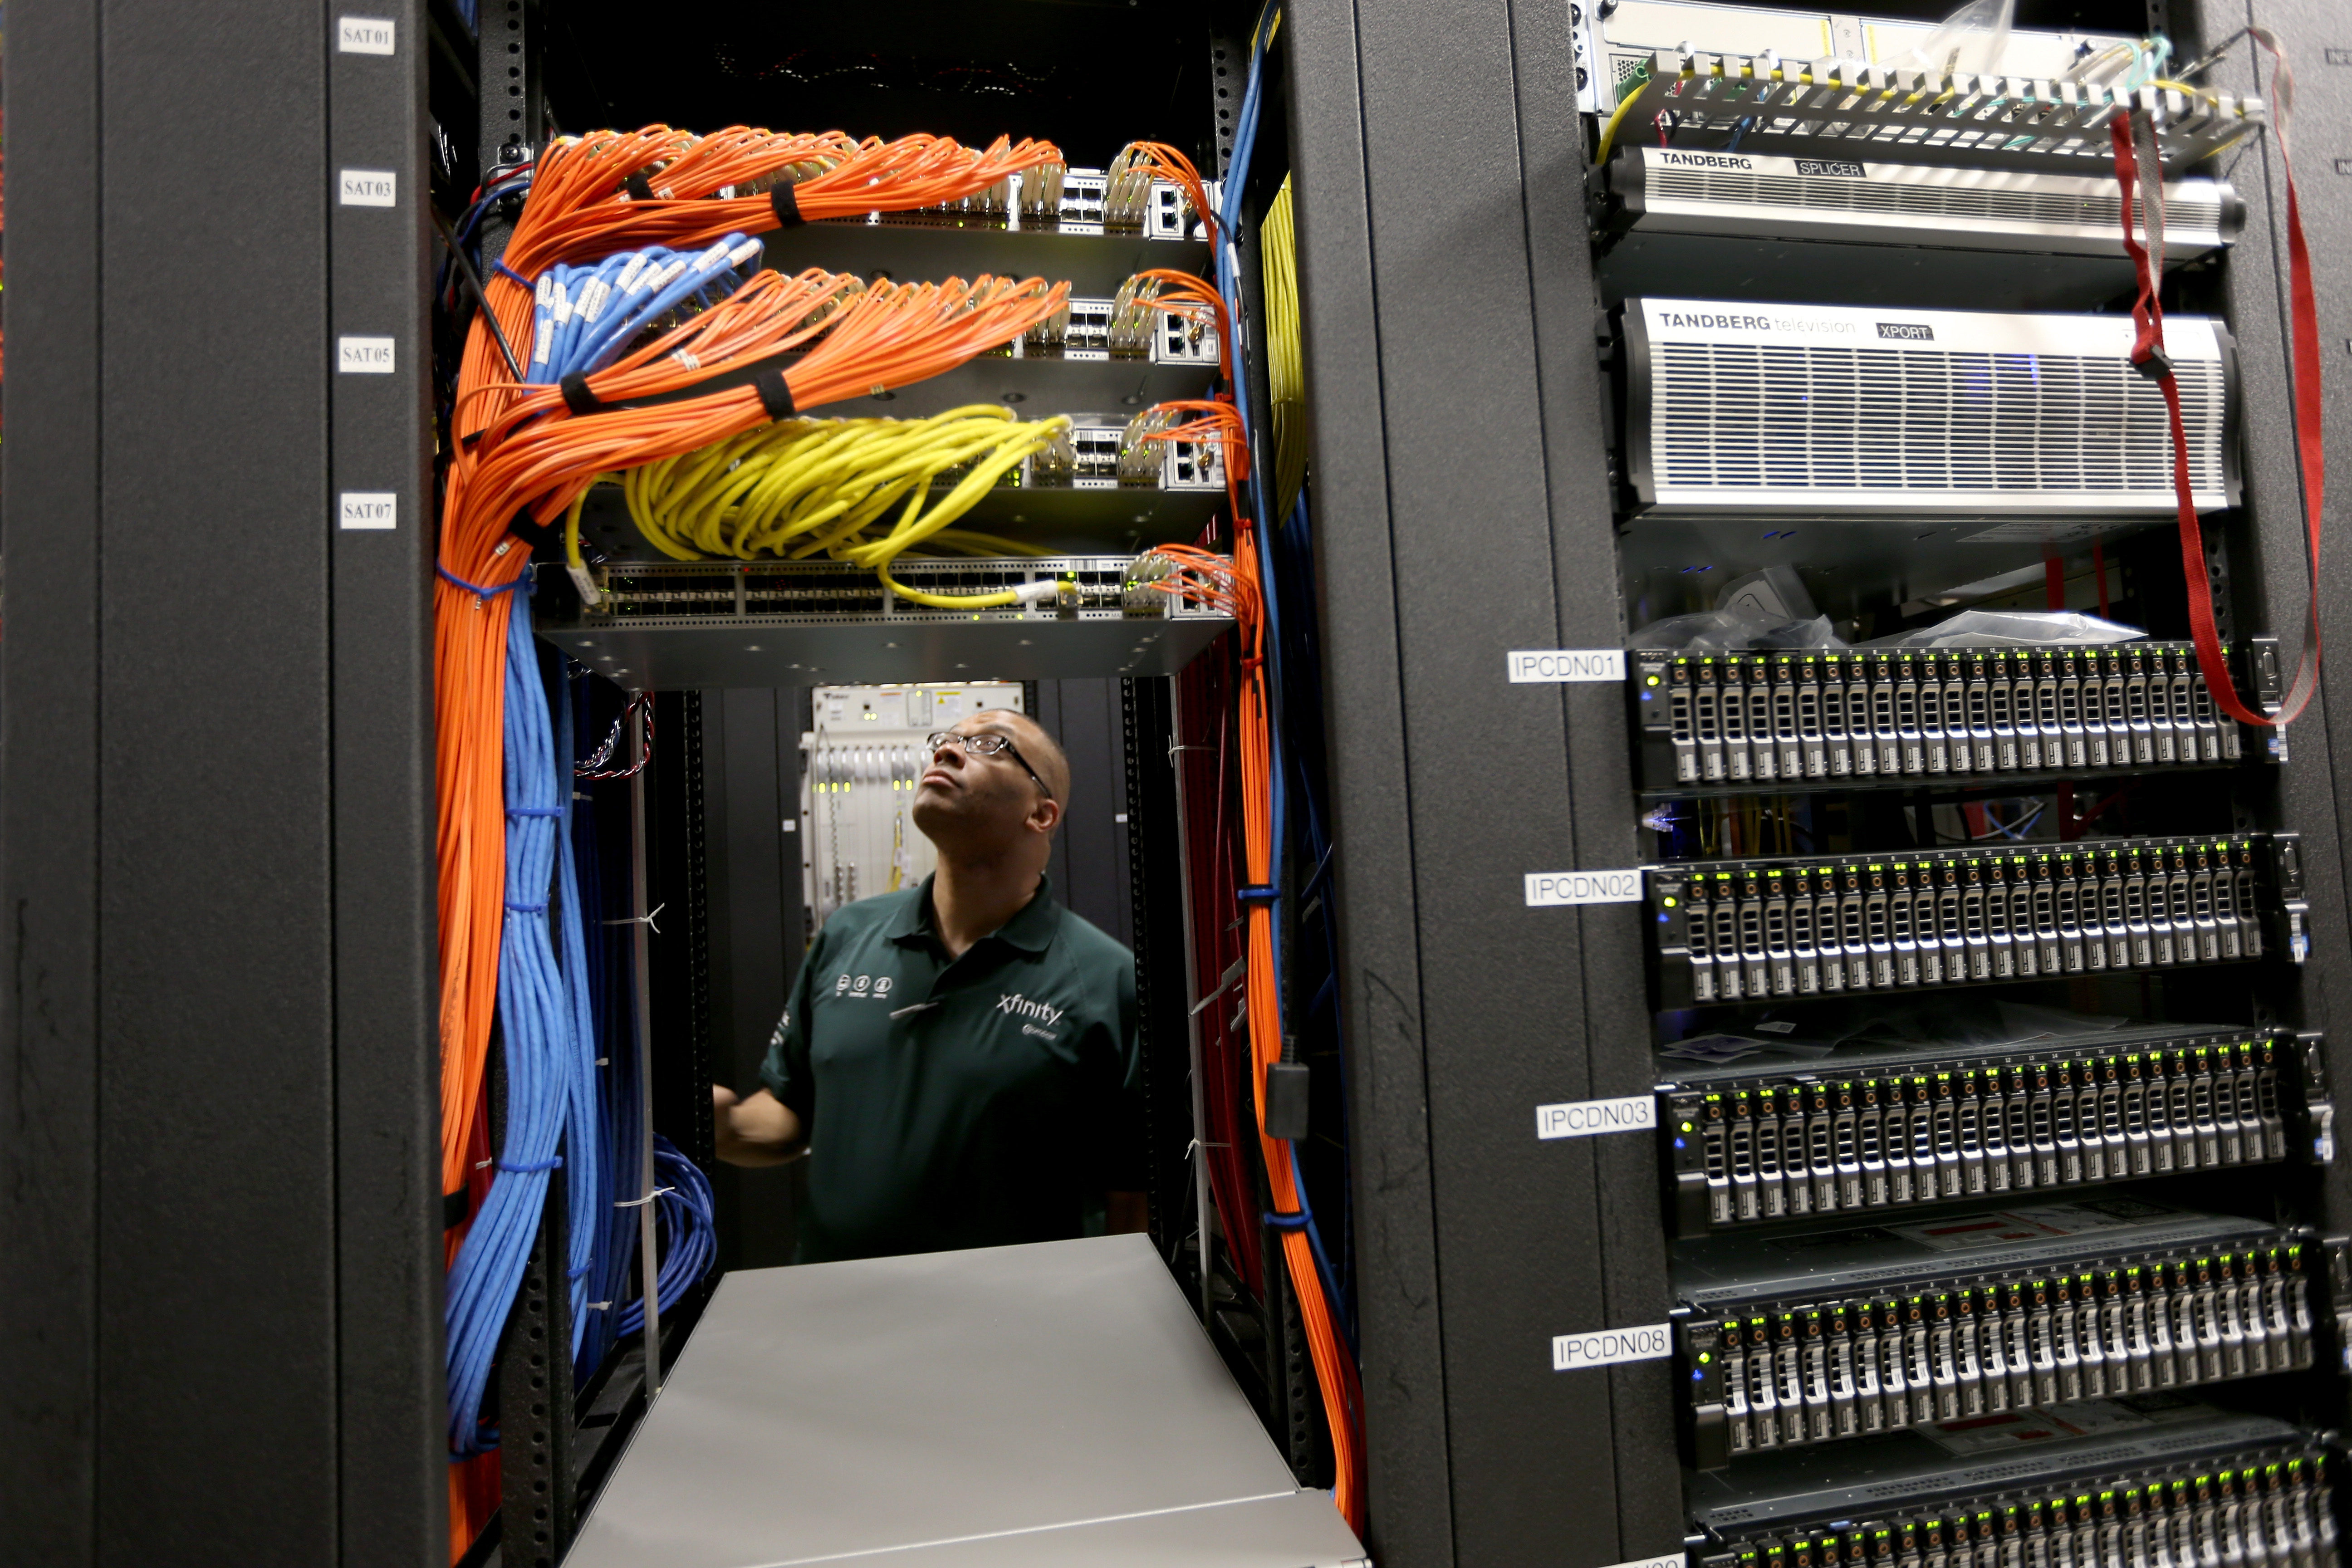 Warren Myers, a headend manager, stands among the cables and routers at a Comcast distribution center where the Comcast regional video, high speed data and voice are piped out to customers on February 13, 2014 in Pompano Beach, Florida.